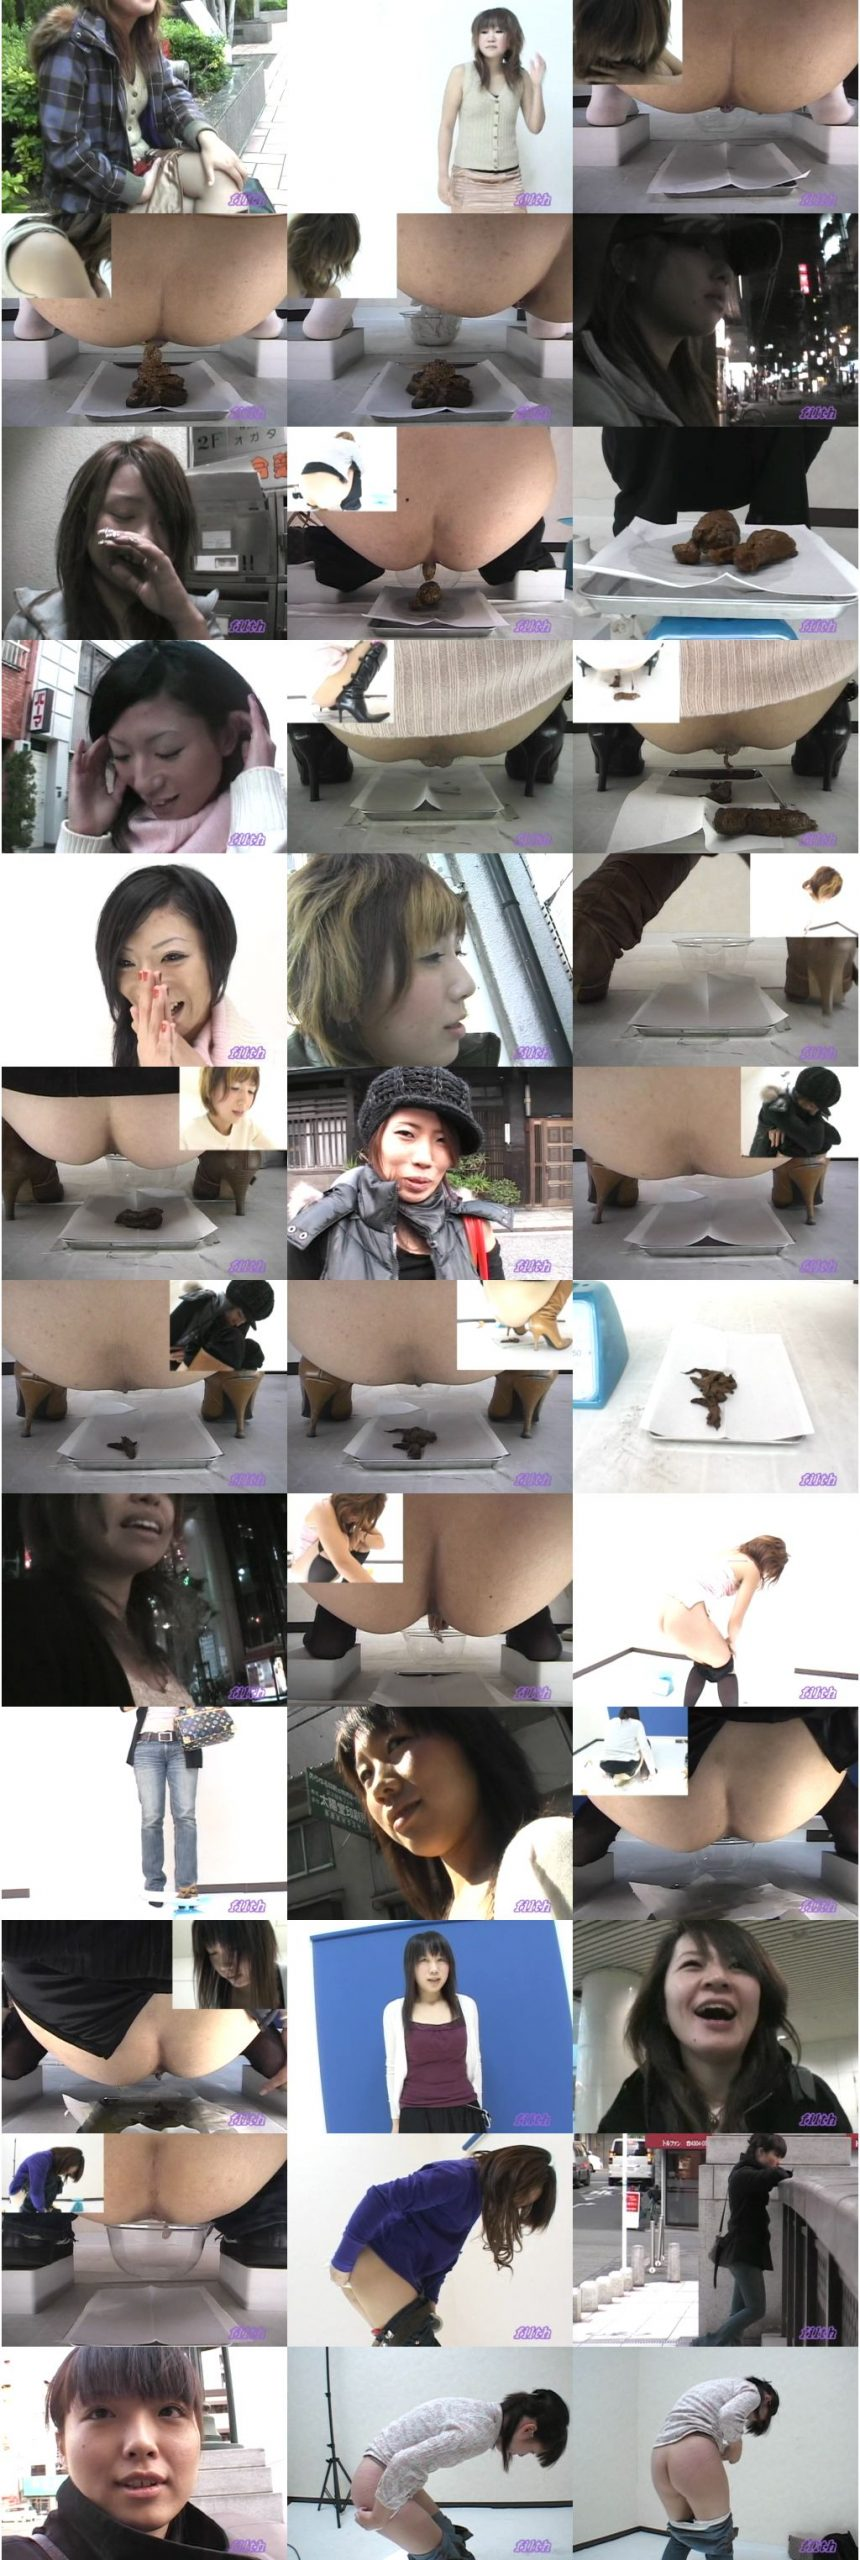 F03 03 s scaled - [с-03] 重み付け船尾 – Weighting Poop Scatting